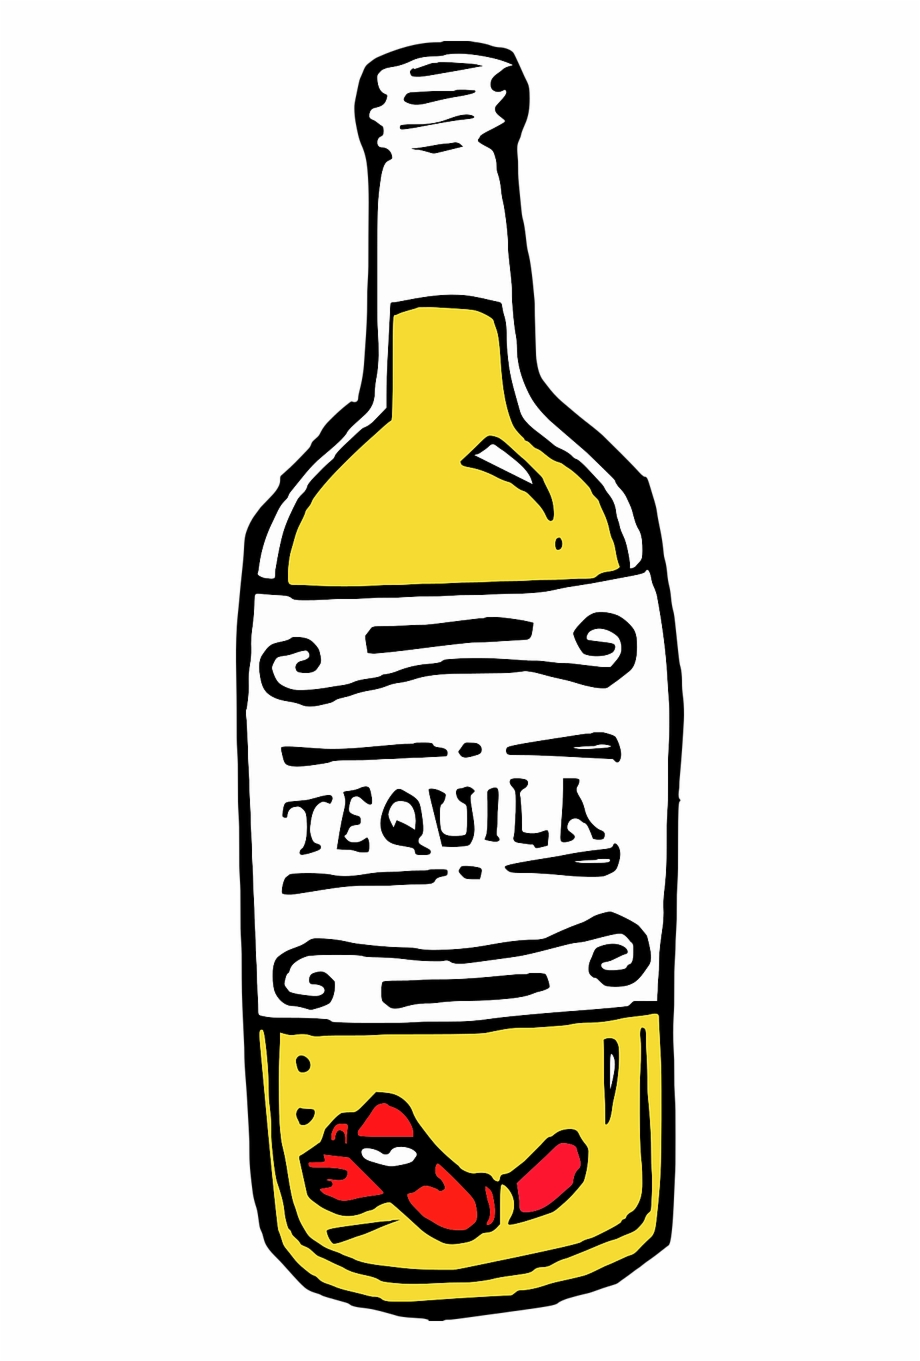 Tequila Drink Alcohol Transparent Png Image.